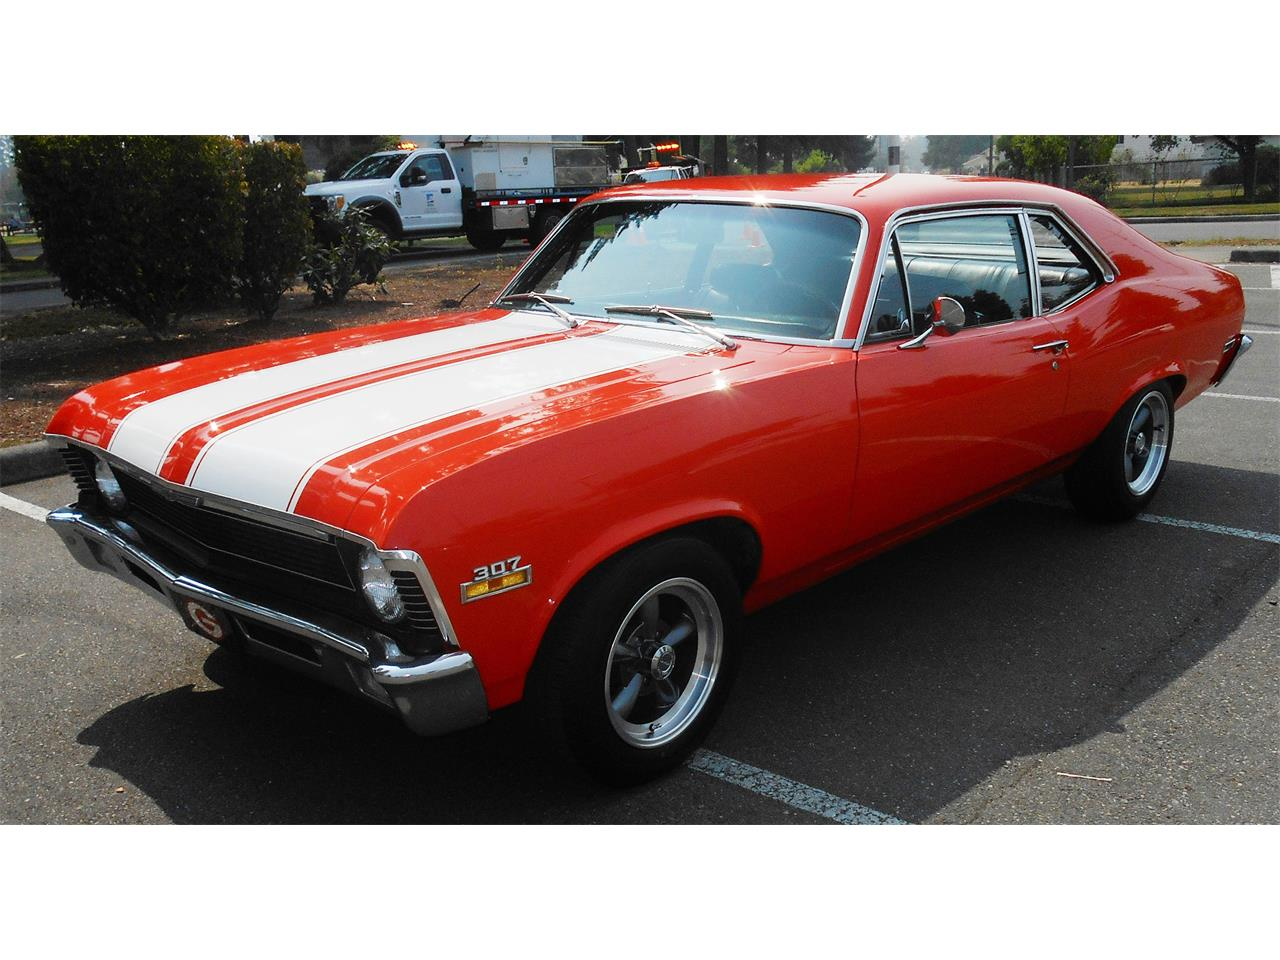 Large Picture of Classic '70 Chevrolet Nova located in Washington - $18,950.00 - OAYA